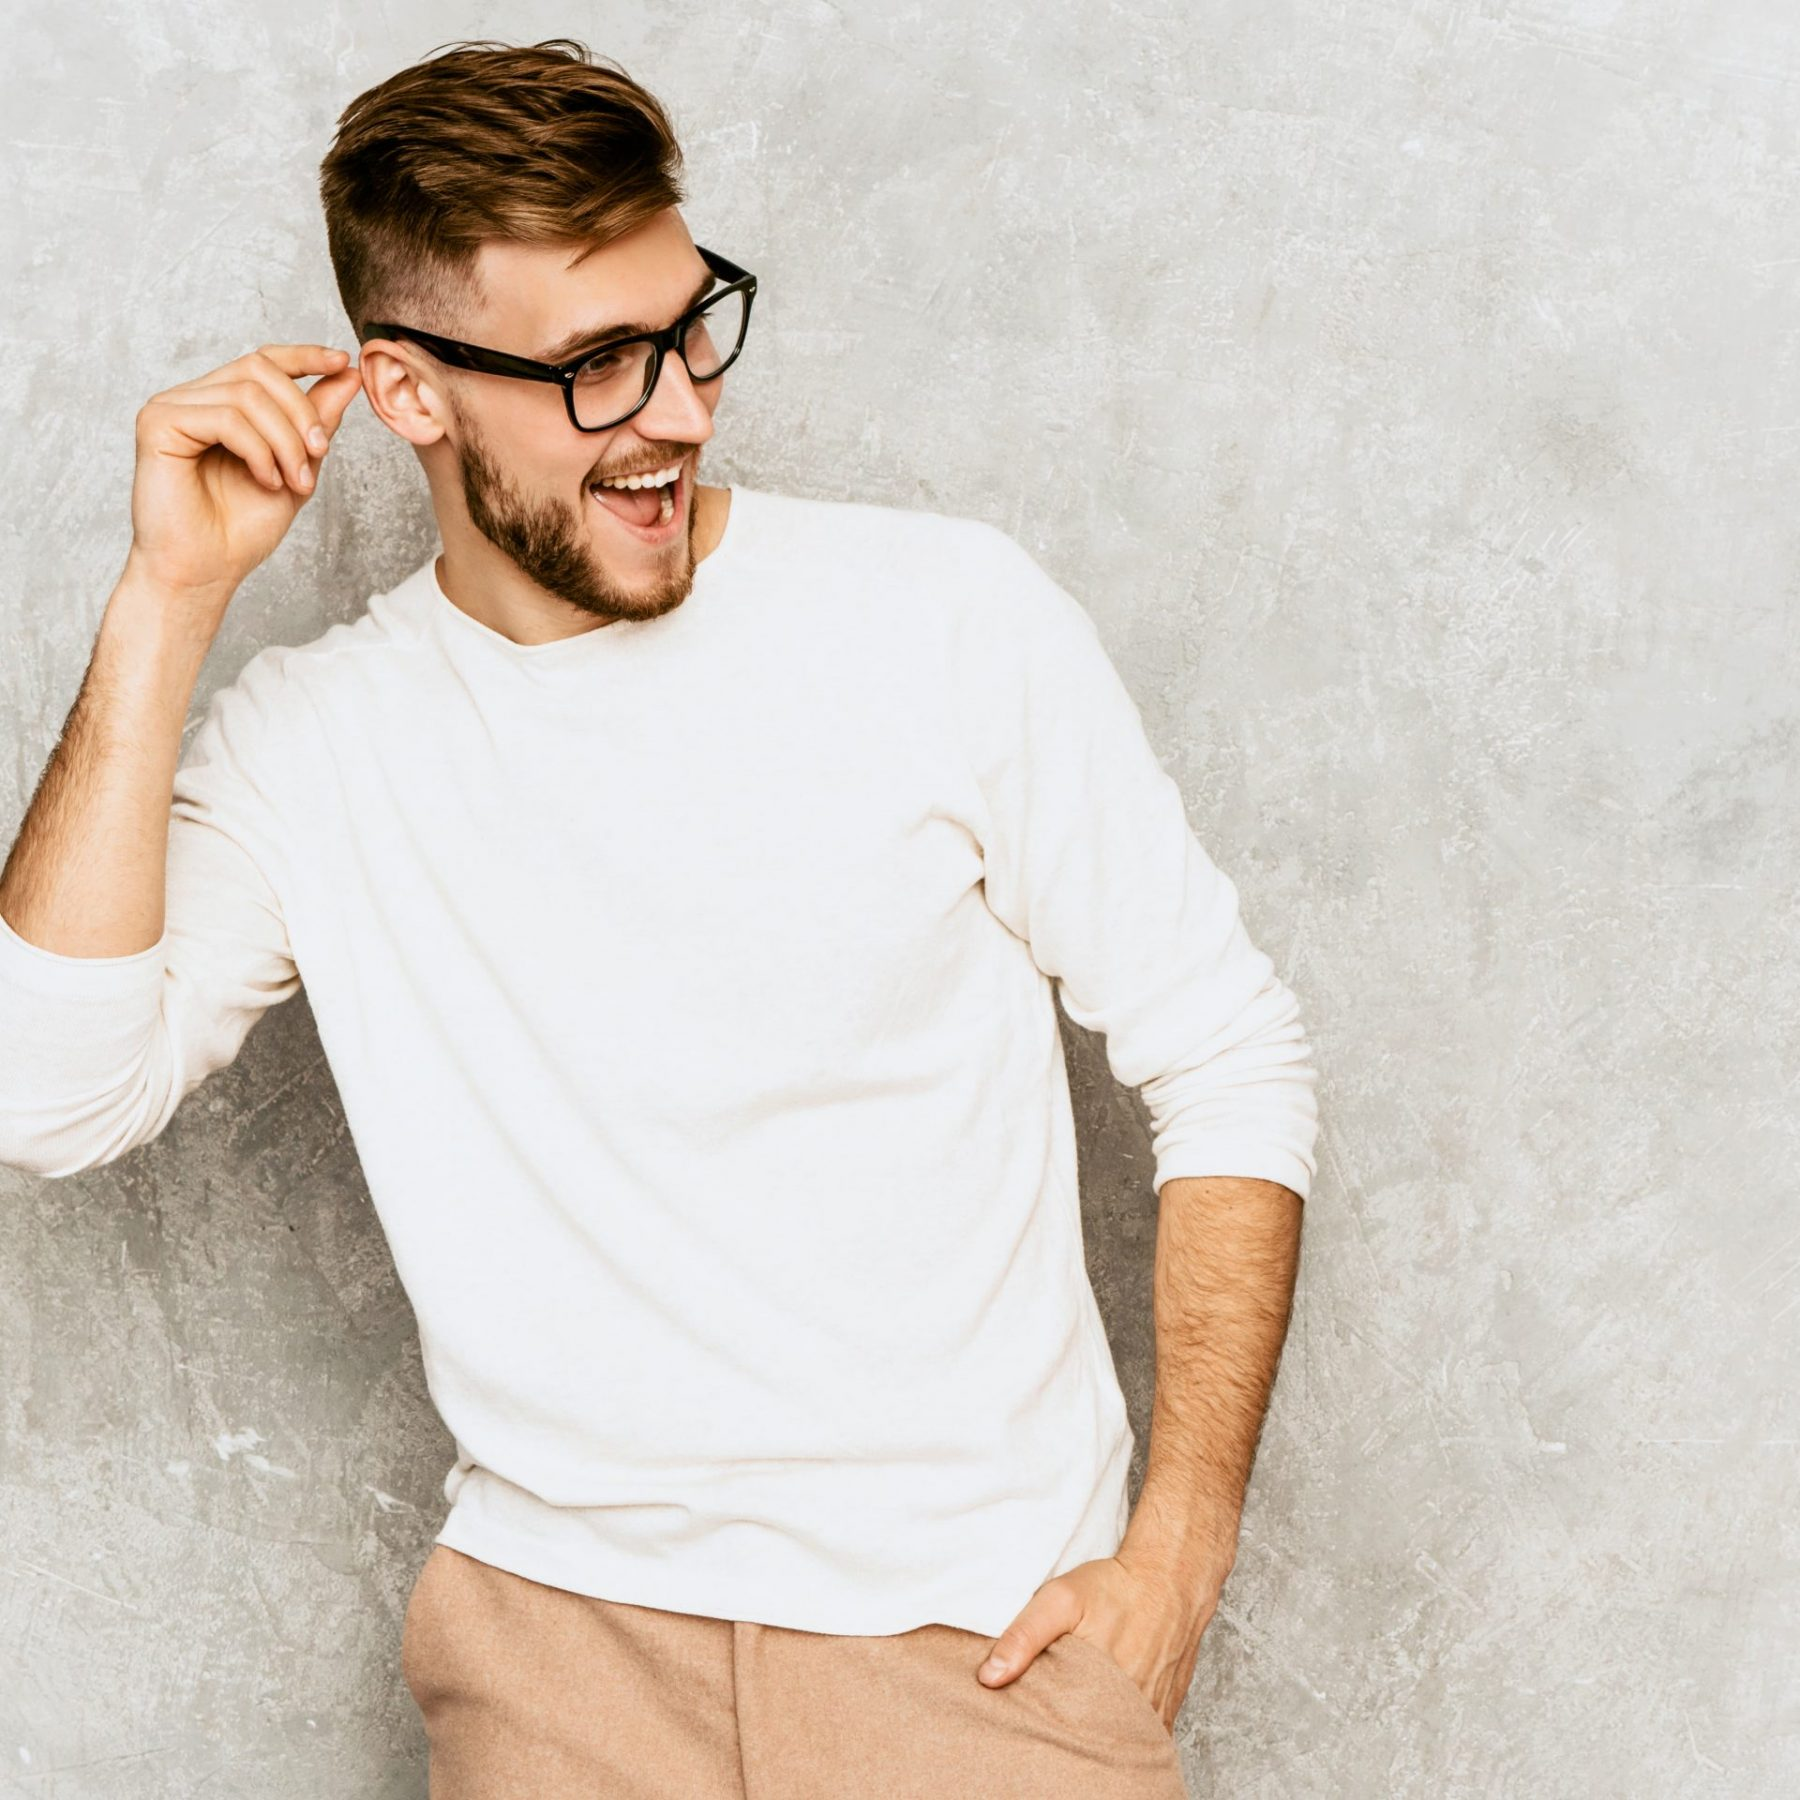 portrait-of-handsome-smiling-hipster-businessman-model-wearing-casual-summer-white-clothes (1)